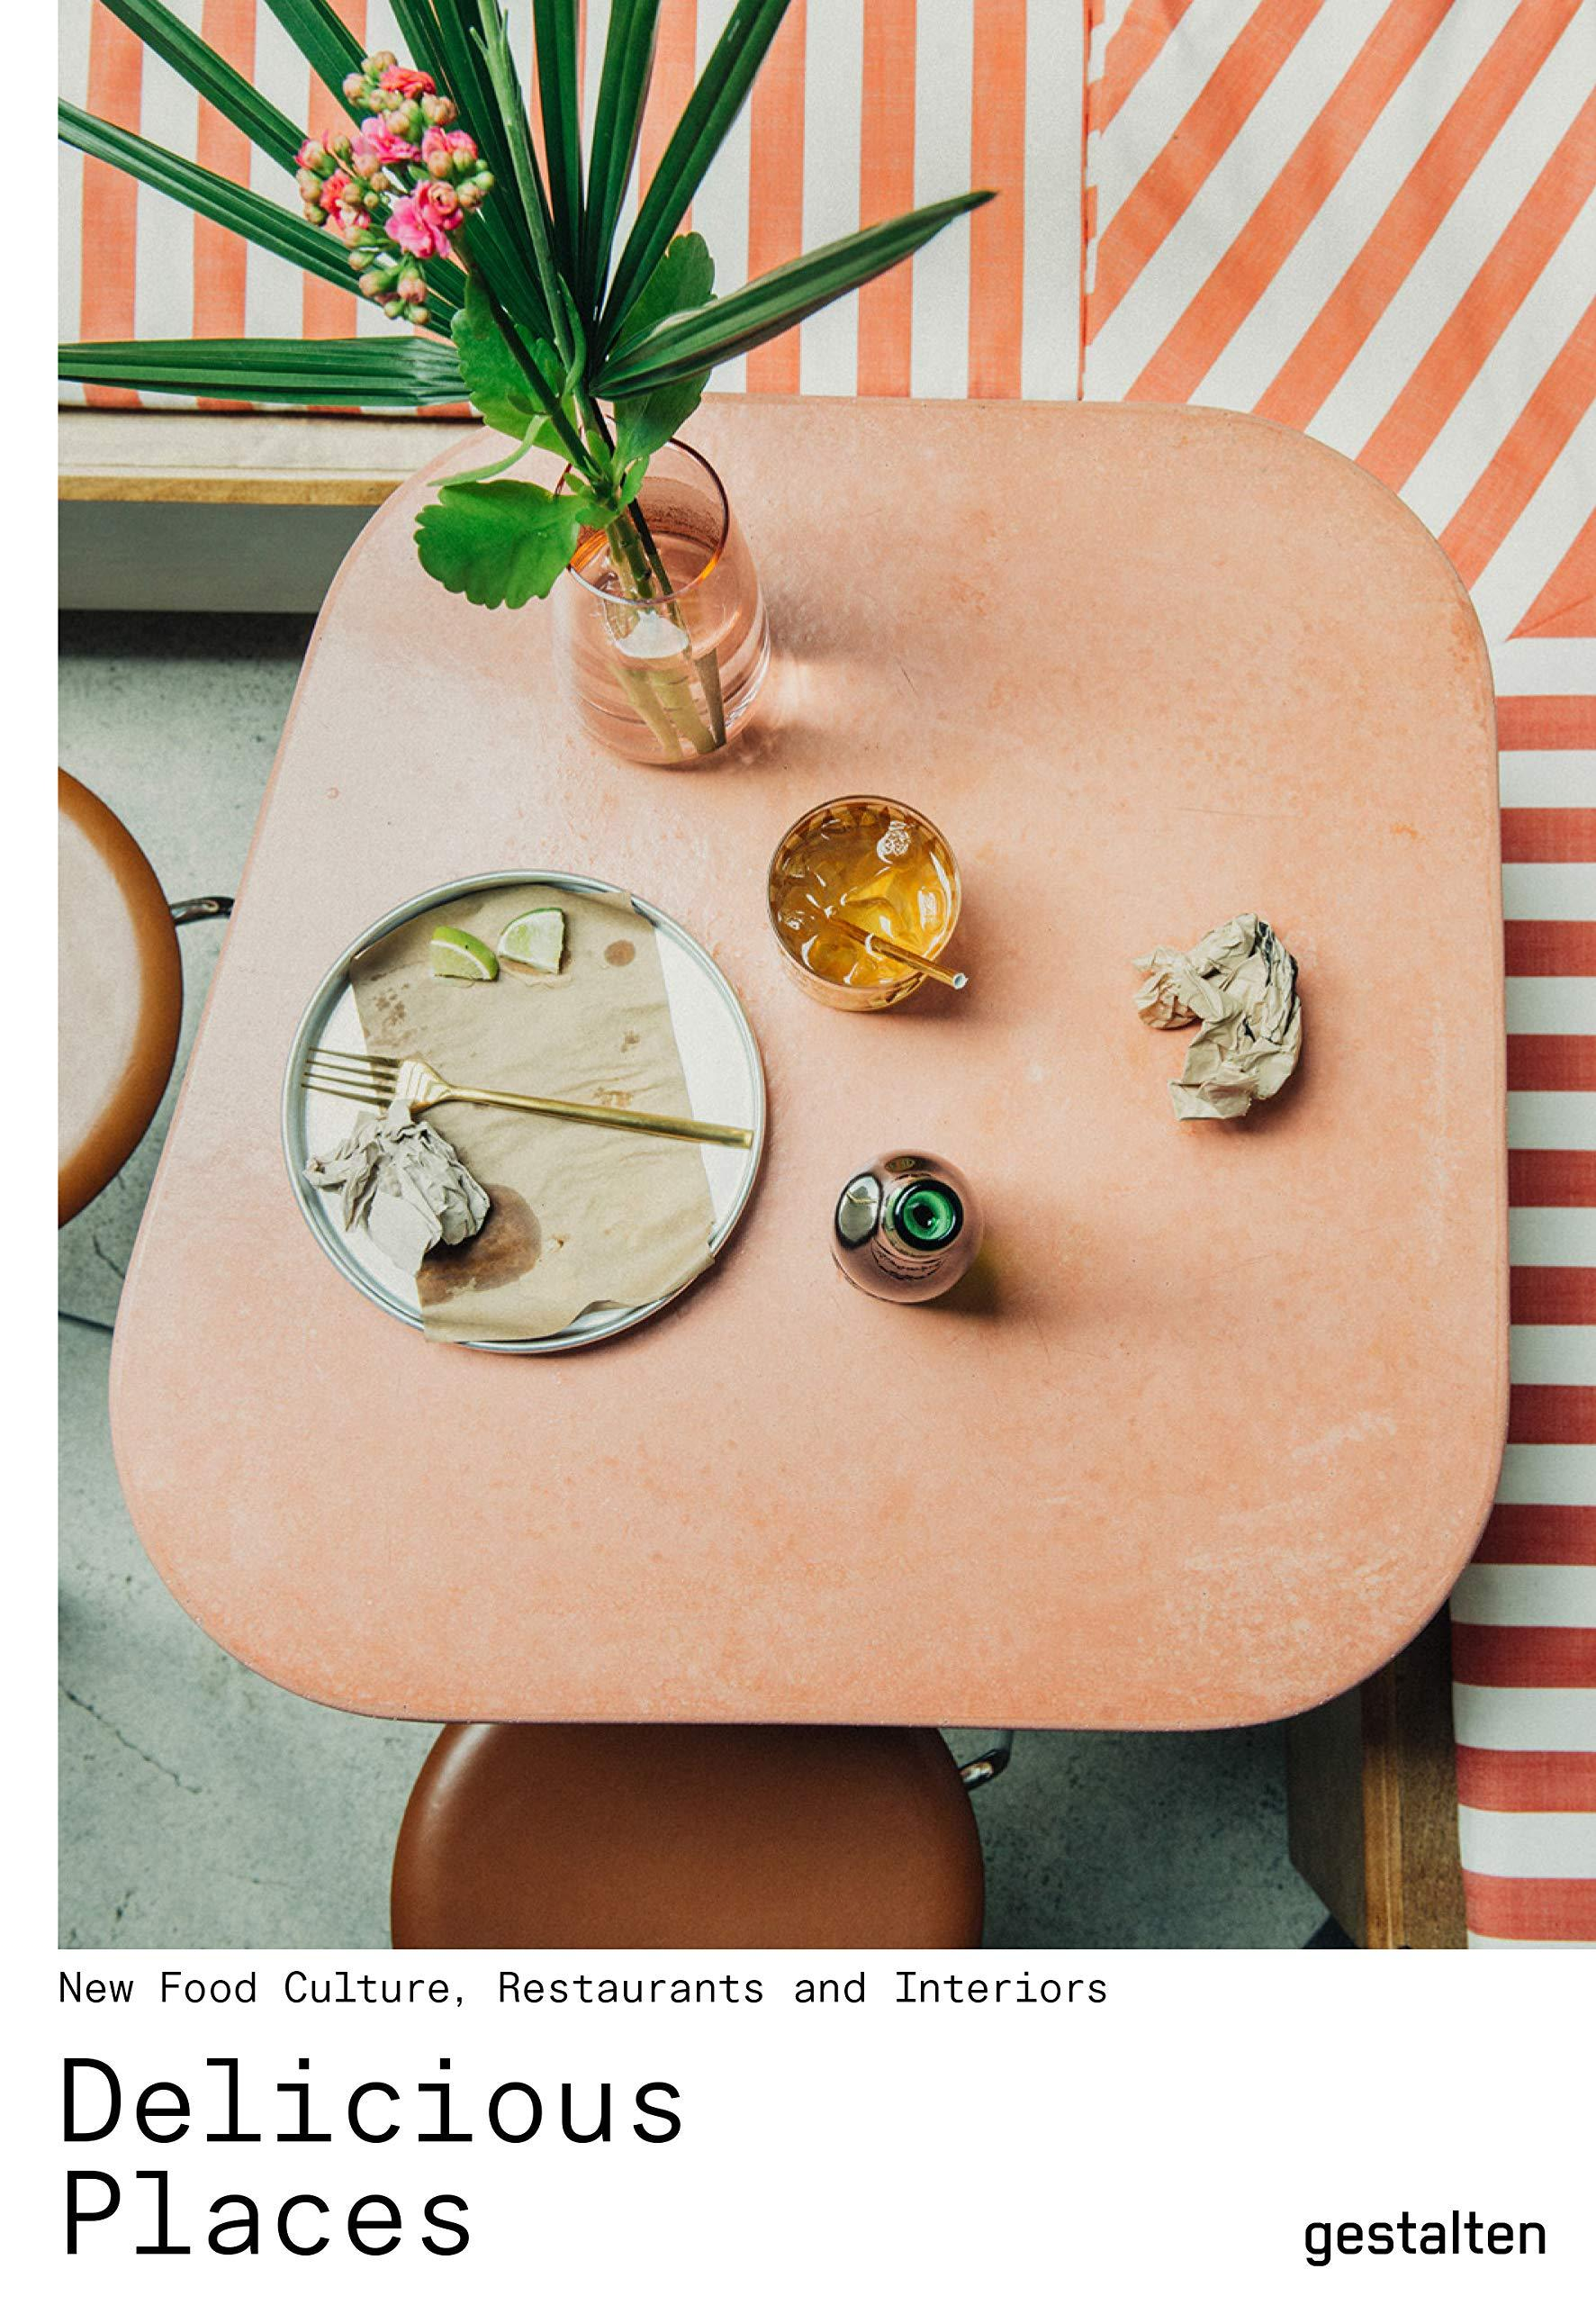 DELICIOUS PLACES - NEW FOOD CULTURE, RESTAURANTS AND INTERIORS